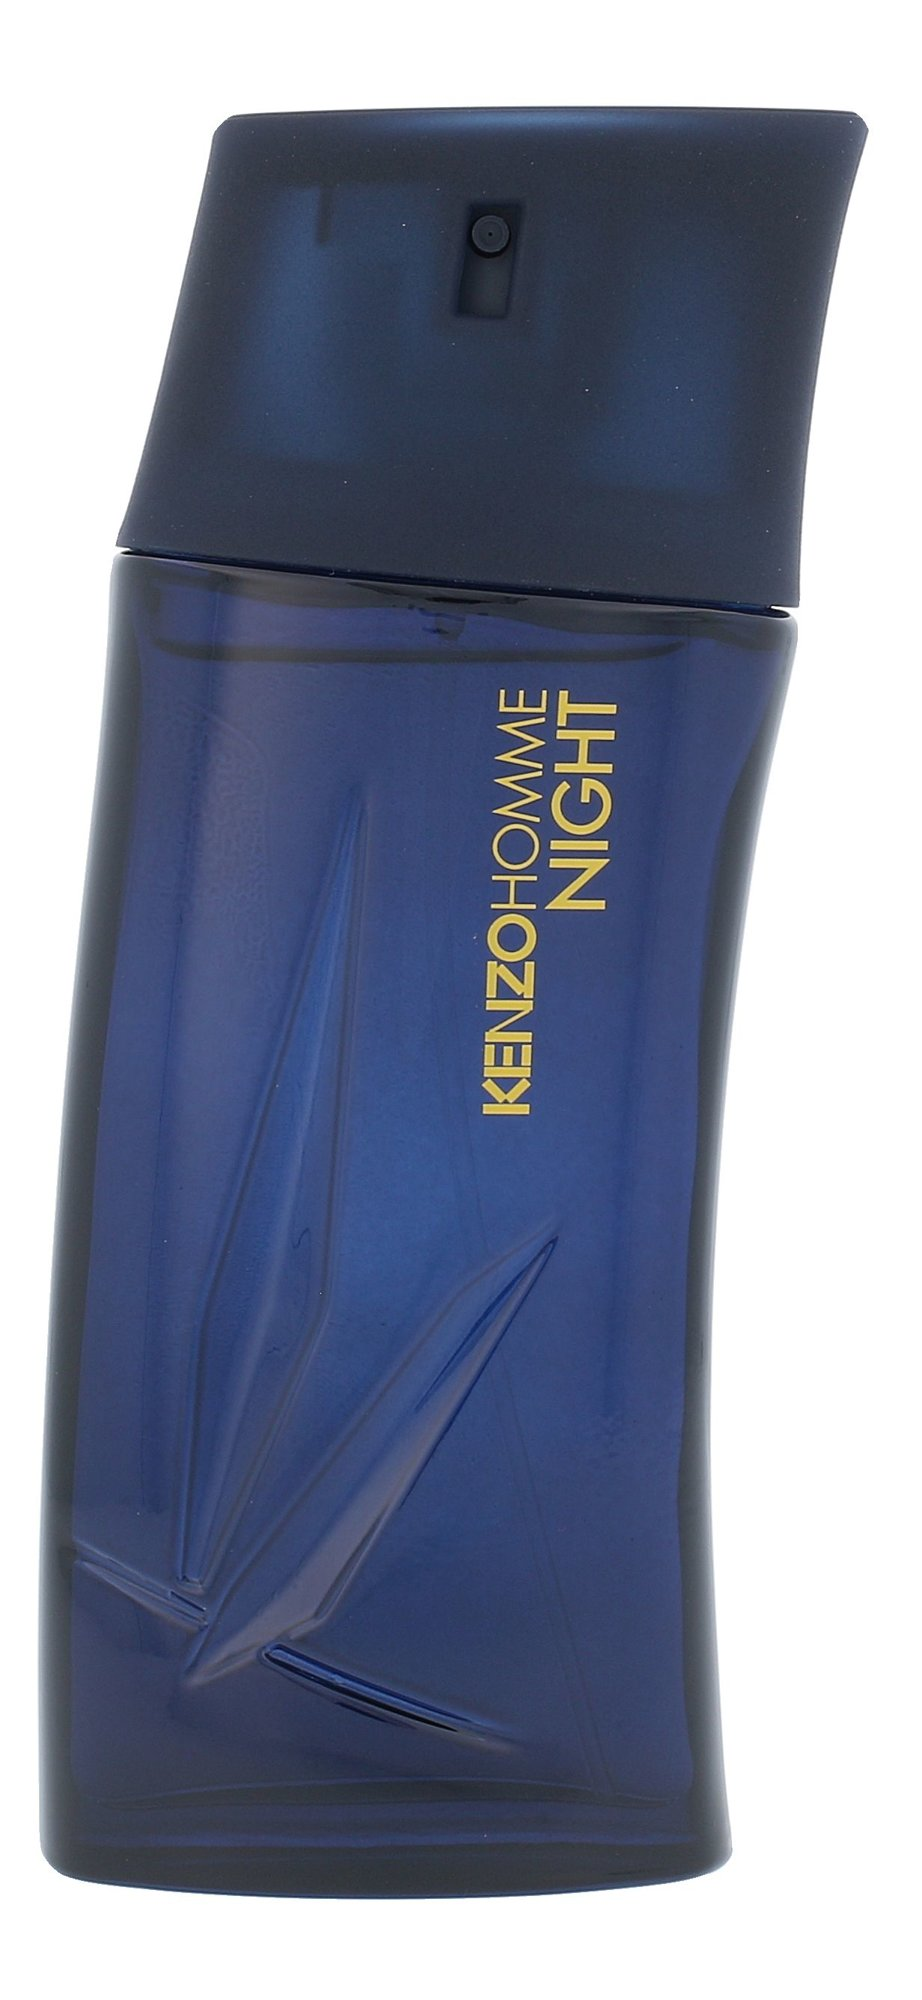 KENZO Kenzo Homme Night EDT 50ml